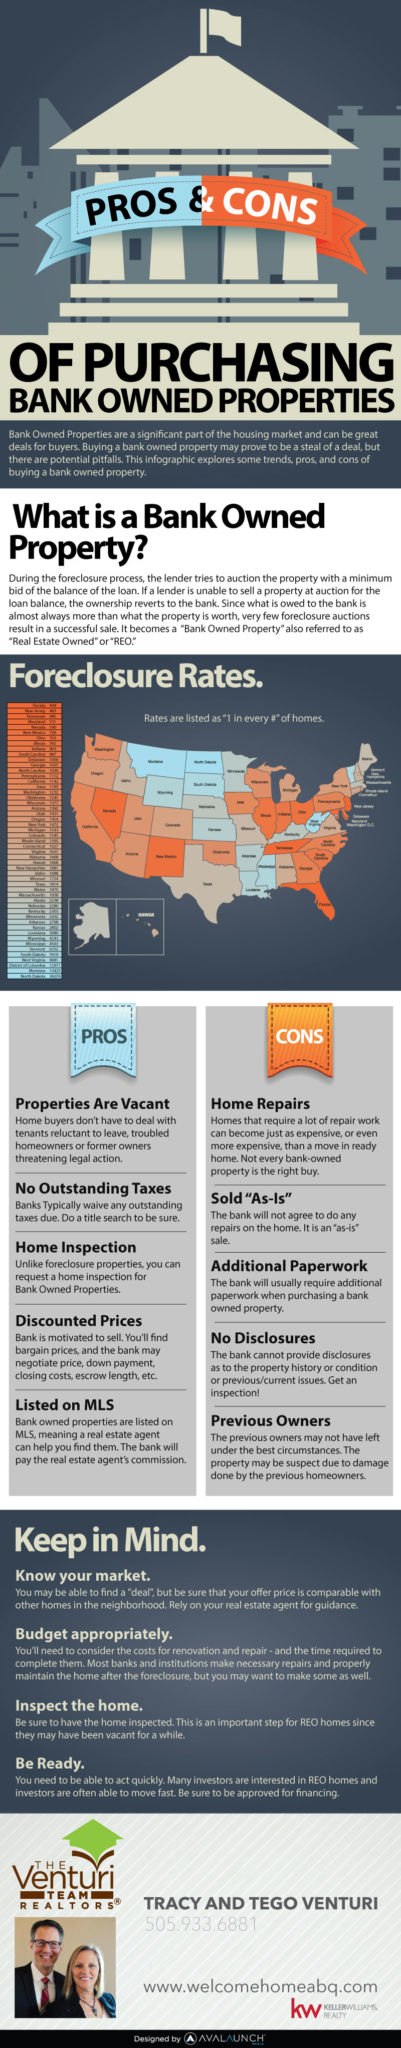 Pros and Cons of Purchasing Foreclosures